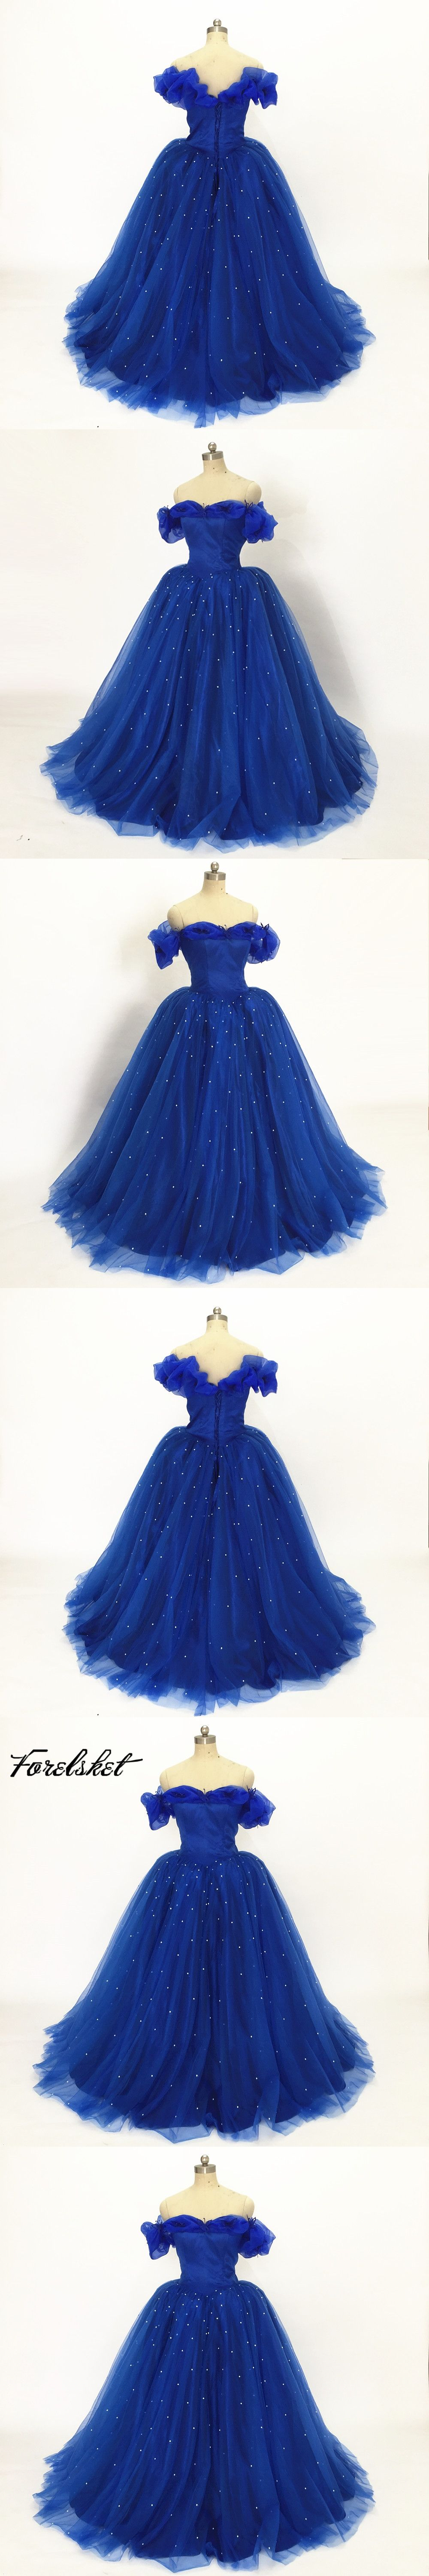 517719d7704 Ball Gown Cinderella Quinceanera Dresses blue Pink Princess Formal Long  Party Gowns Off Shoulder 3D Flowers Real Photos